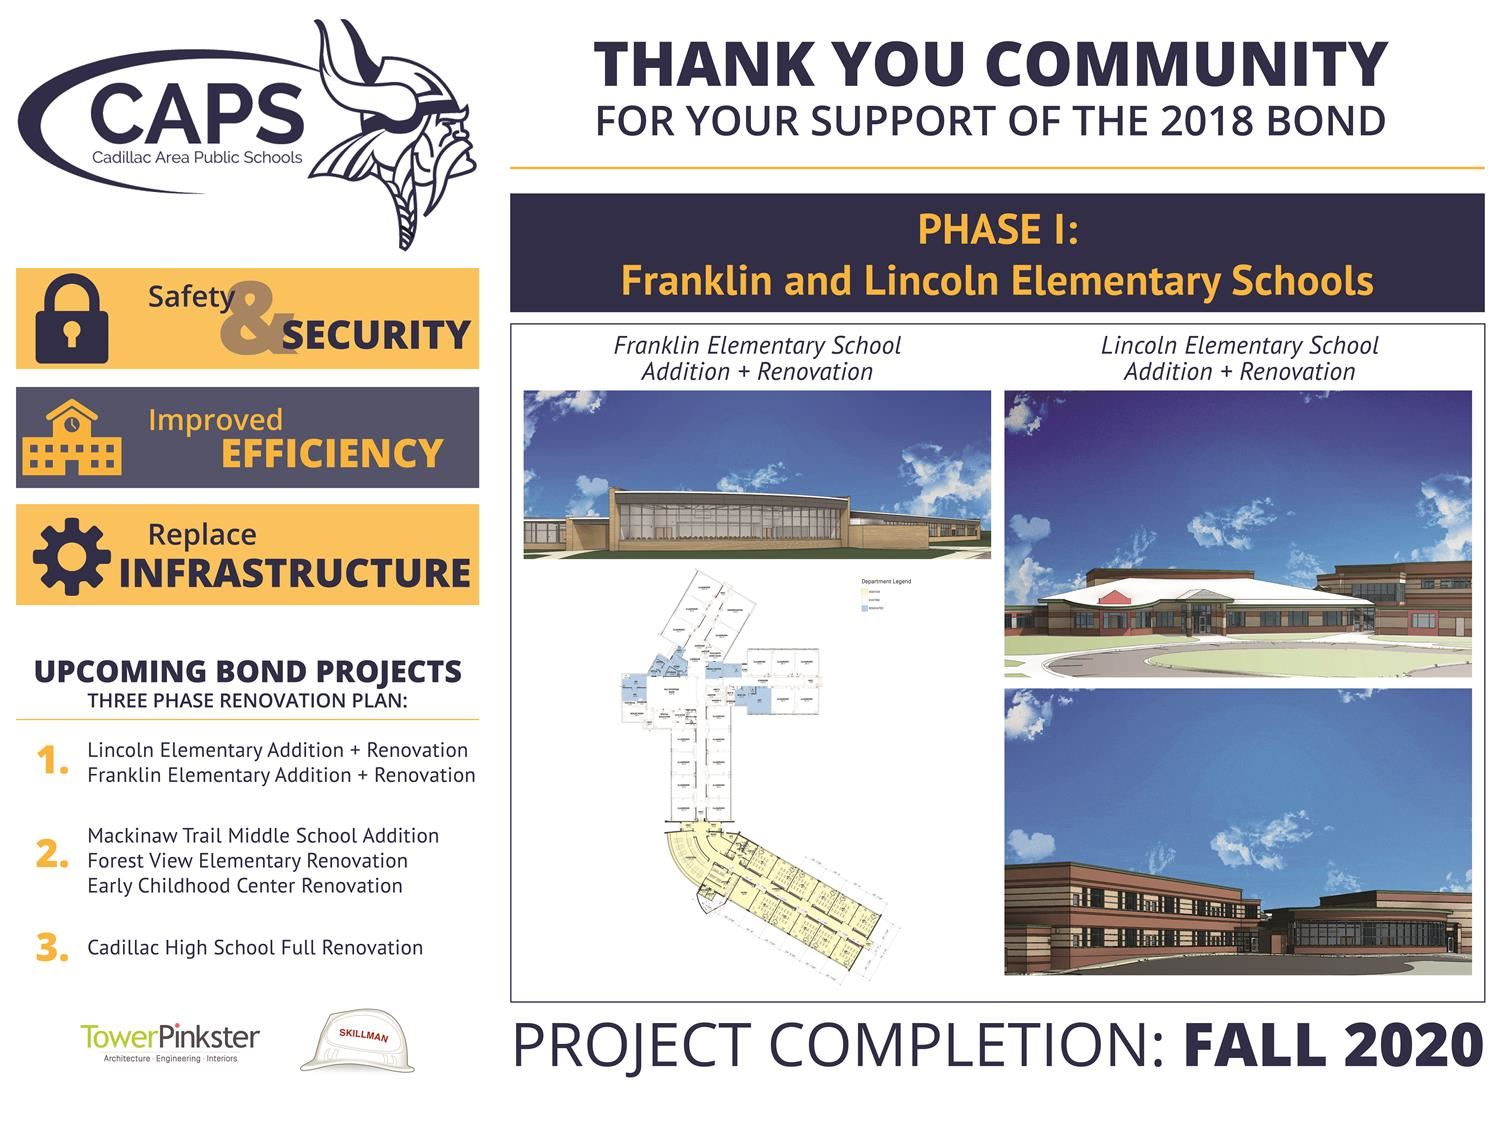 Thank you CAPS Community for Support of the 2018 Bond.  Project Completion Fall 2020